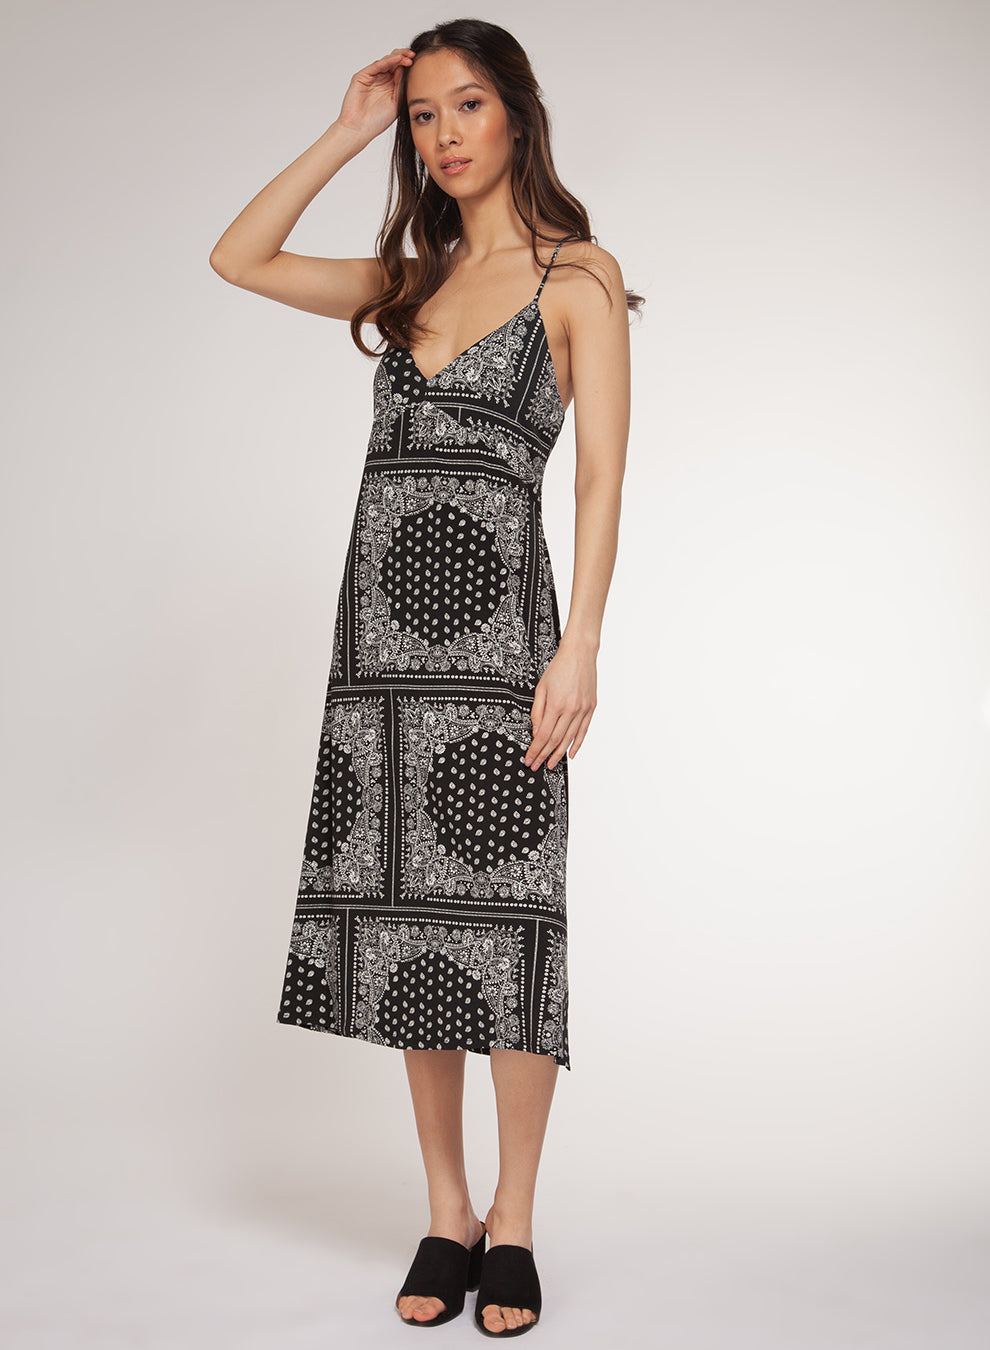 Black/White Paisley Spaghetti Strap Midi Dress